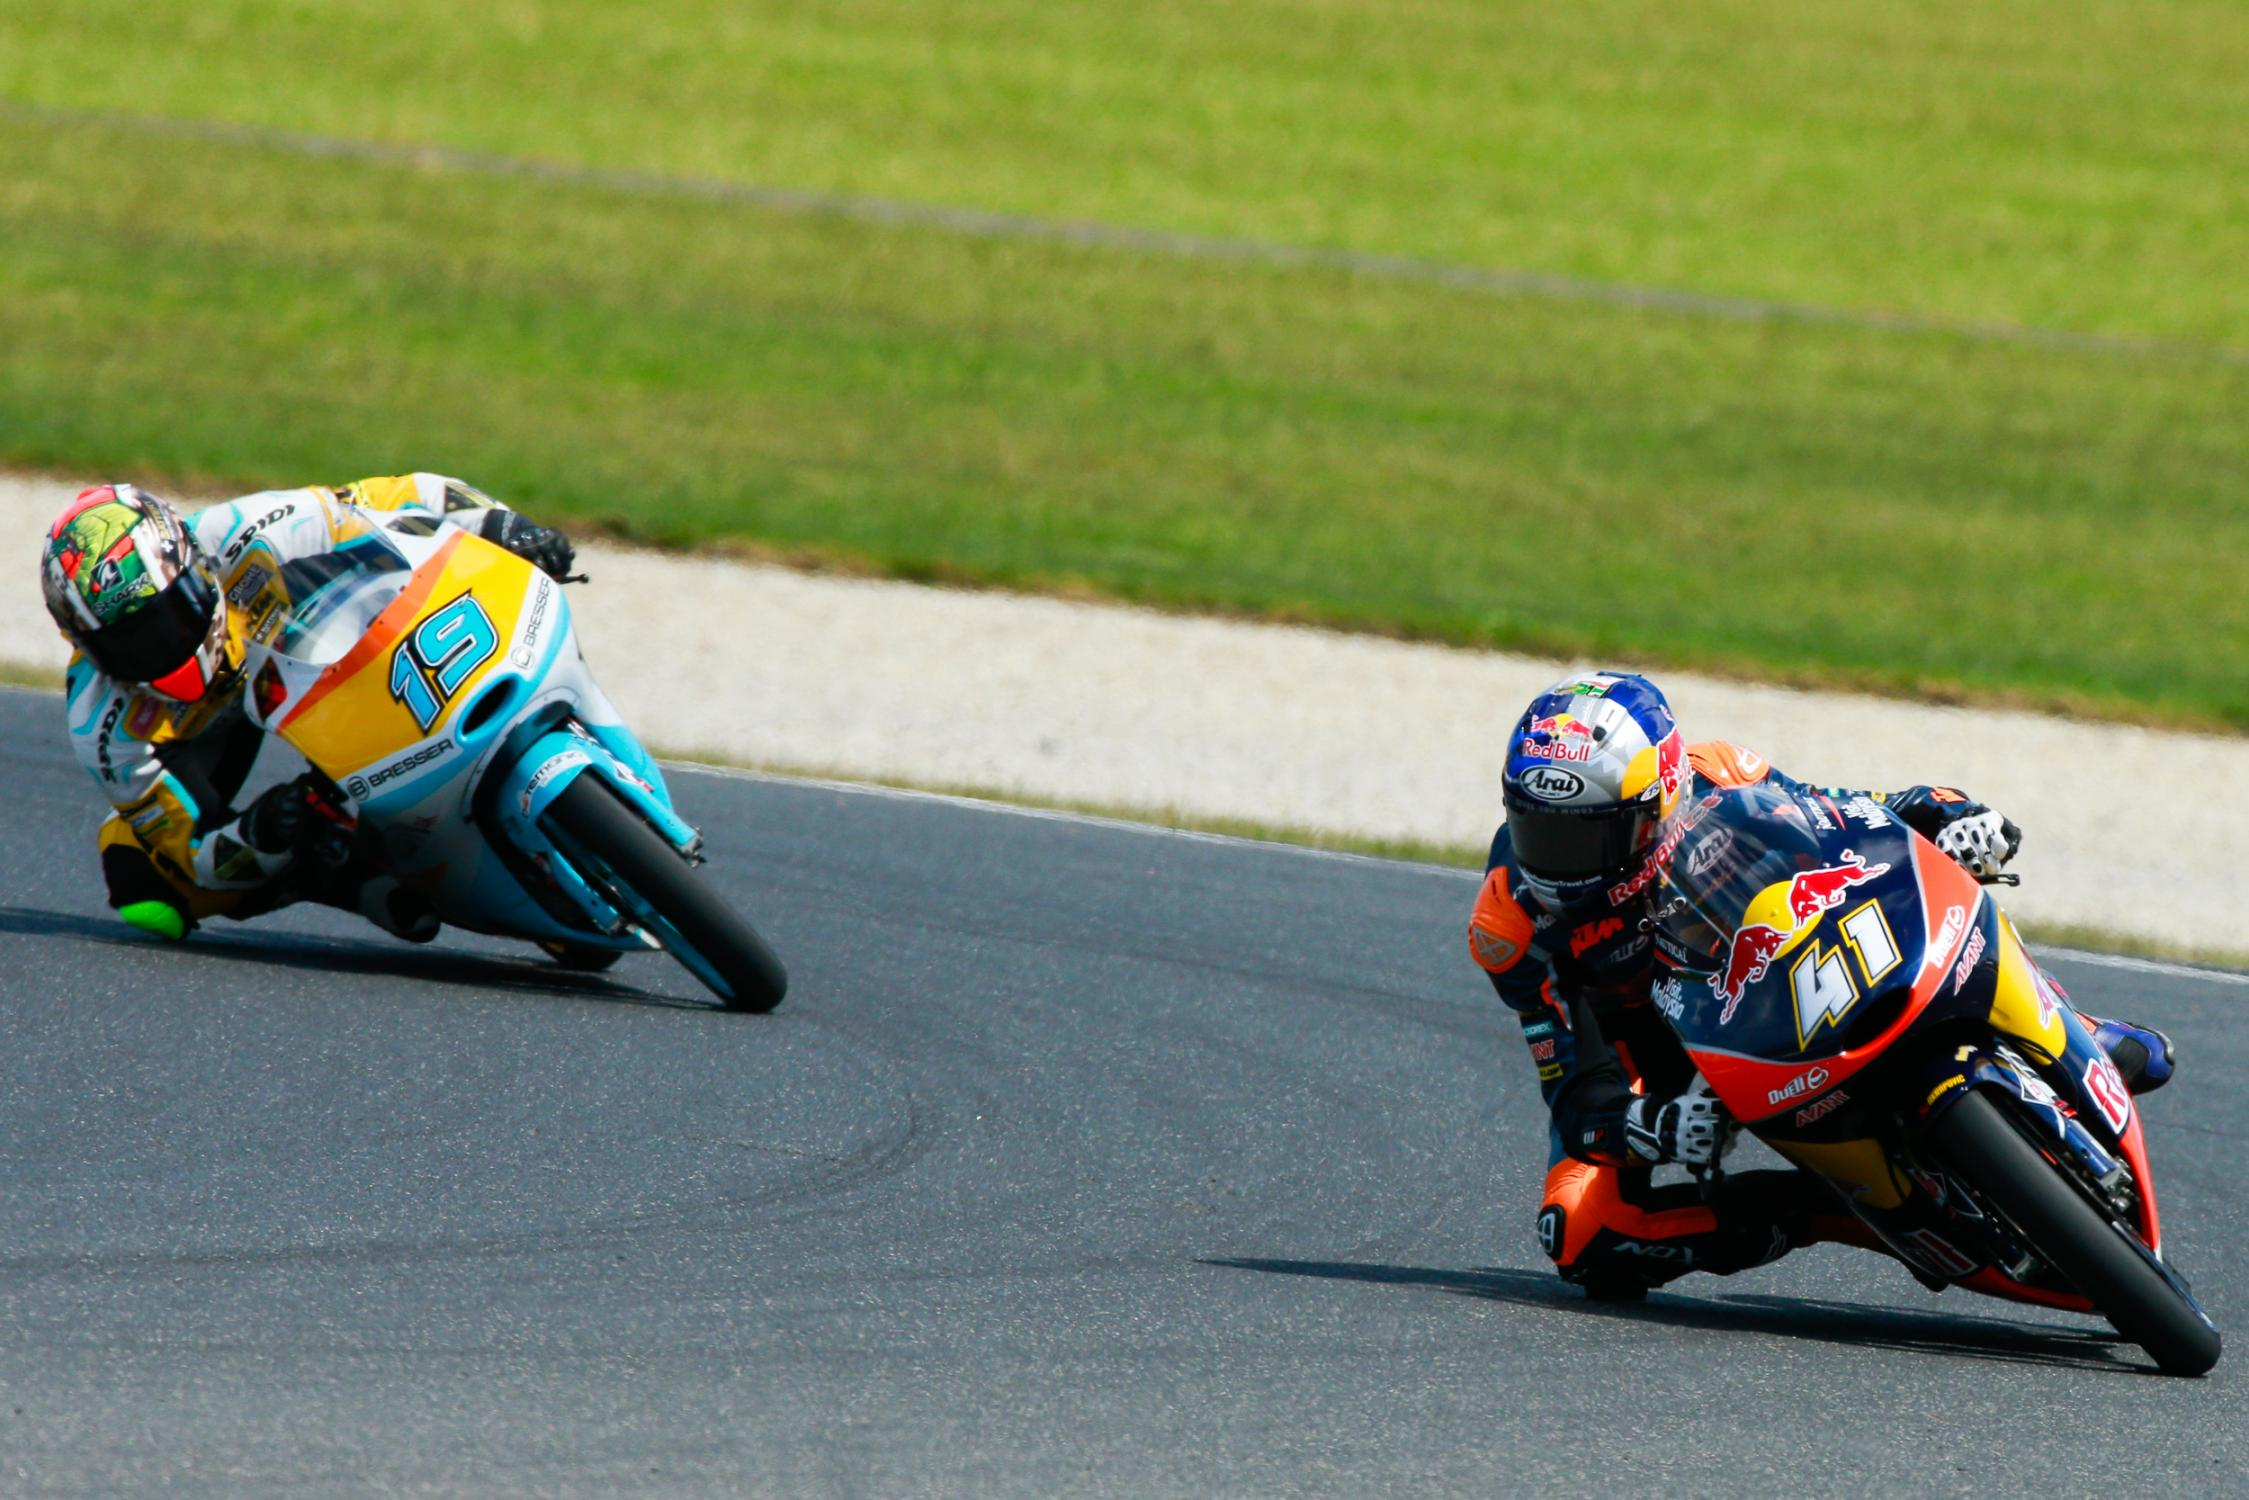 BRAD BINDER INTOUCHABLE